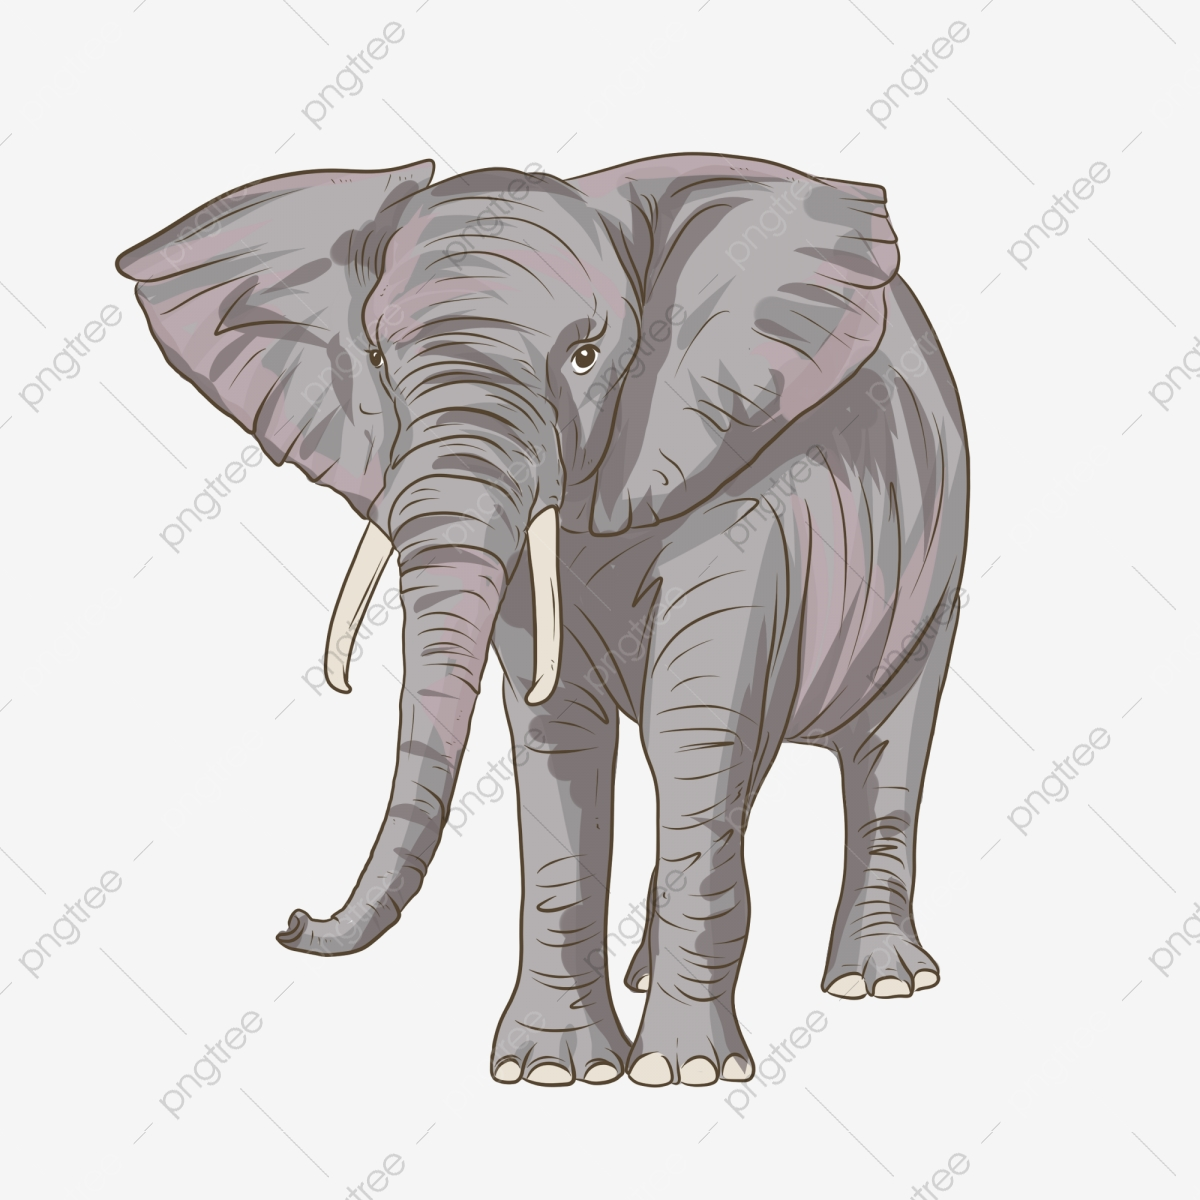 Elephant Png Vector Psd And Clipart With Transparent Background For Free Download Pngtree If you like, you can download pictures in icon format or directly in png image format. https pngtree com freepng cartoon elephant s nose 4362785 html